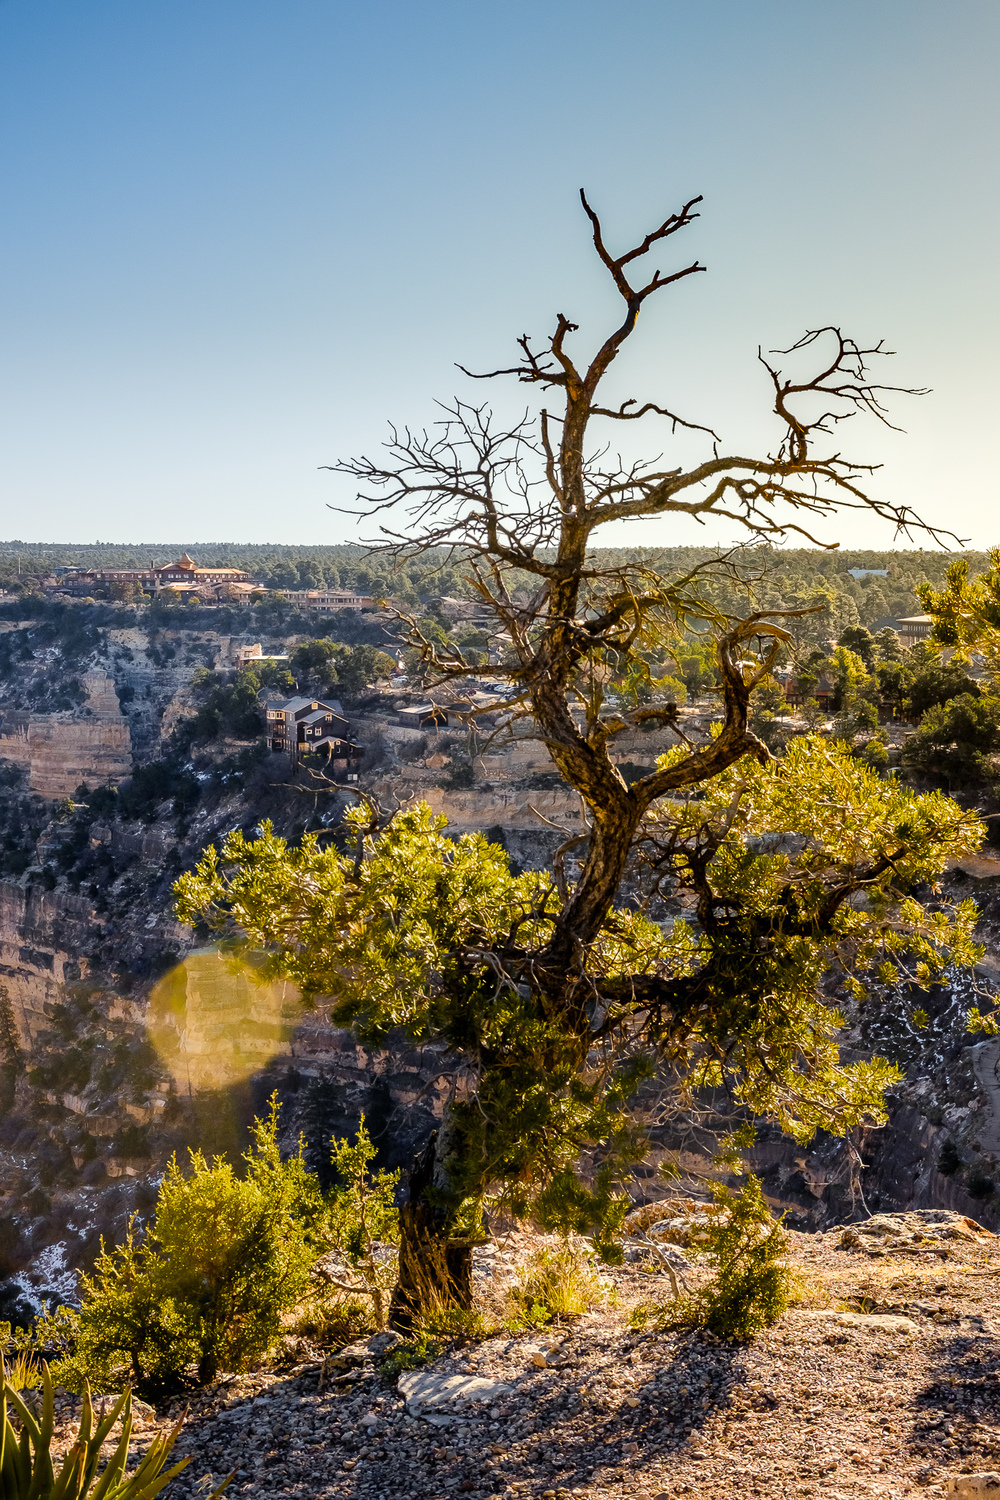 High Desert Tree -   A tree stands against time along the rim of the Grand Canyon. The lodge is visible in the background, as well as Koble Brother's studio a bit further down on the canyon wall. [ Fujifilm X100t, f/11, 1/250s, ISO 400 ]